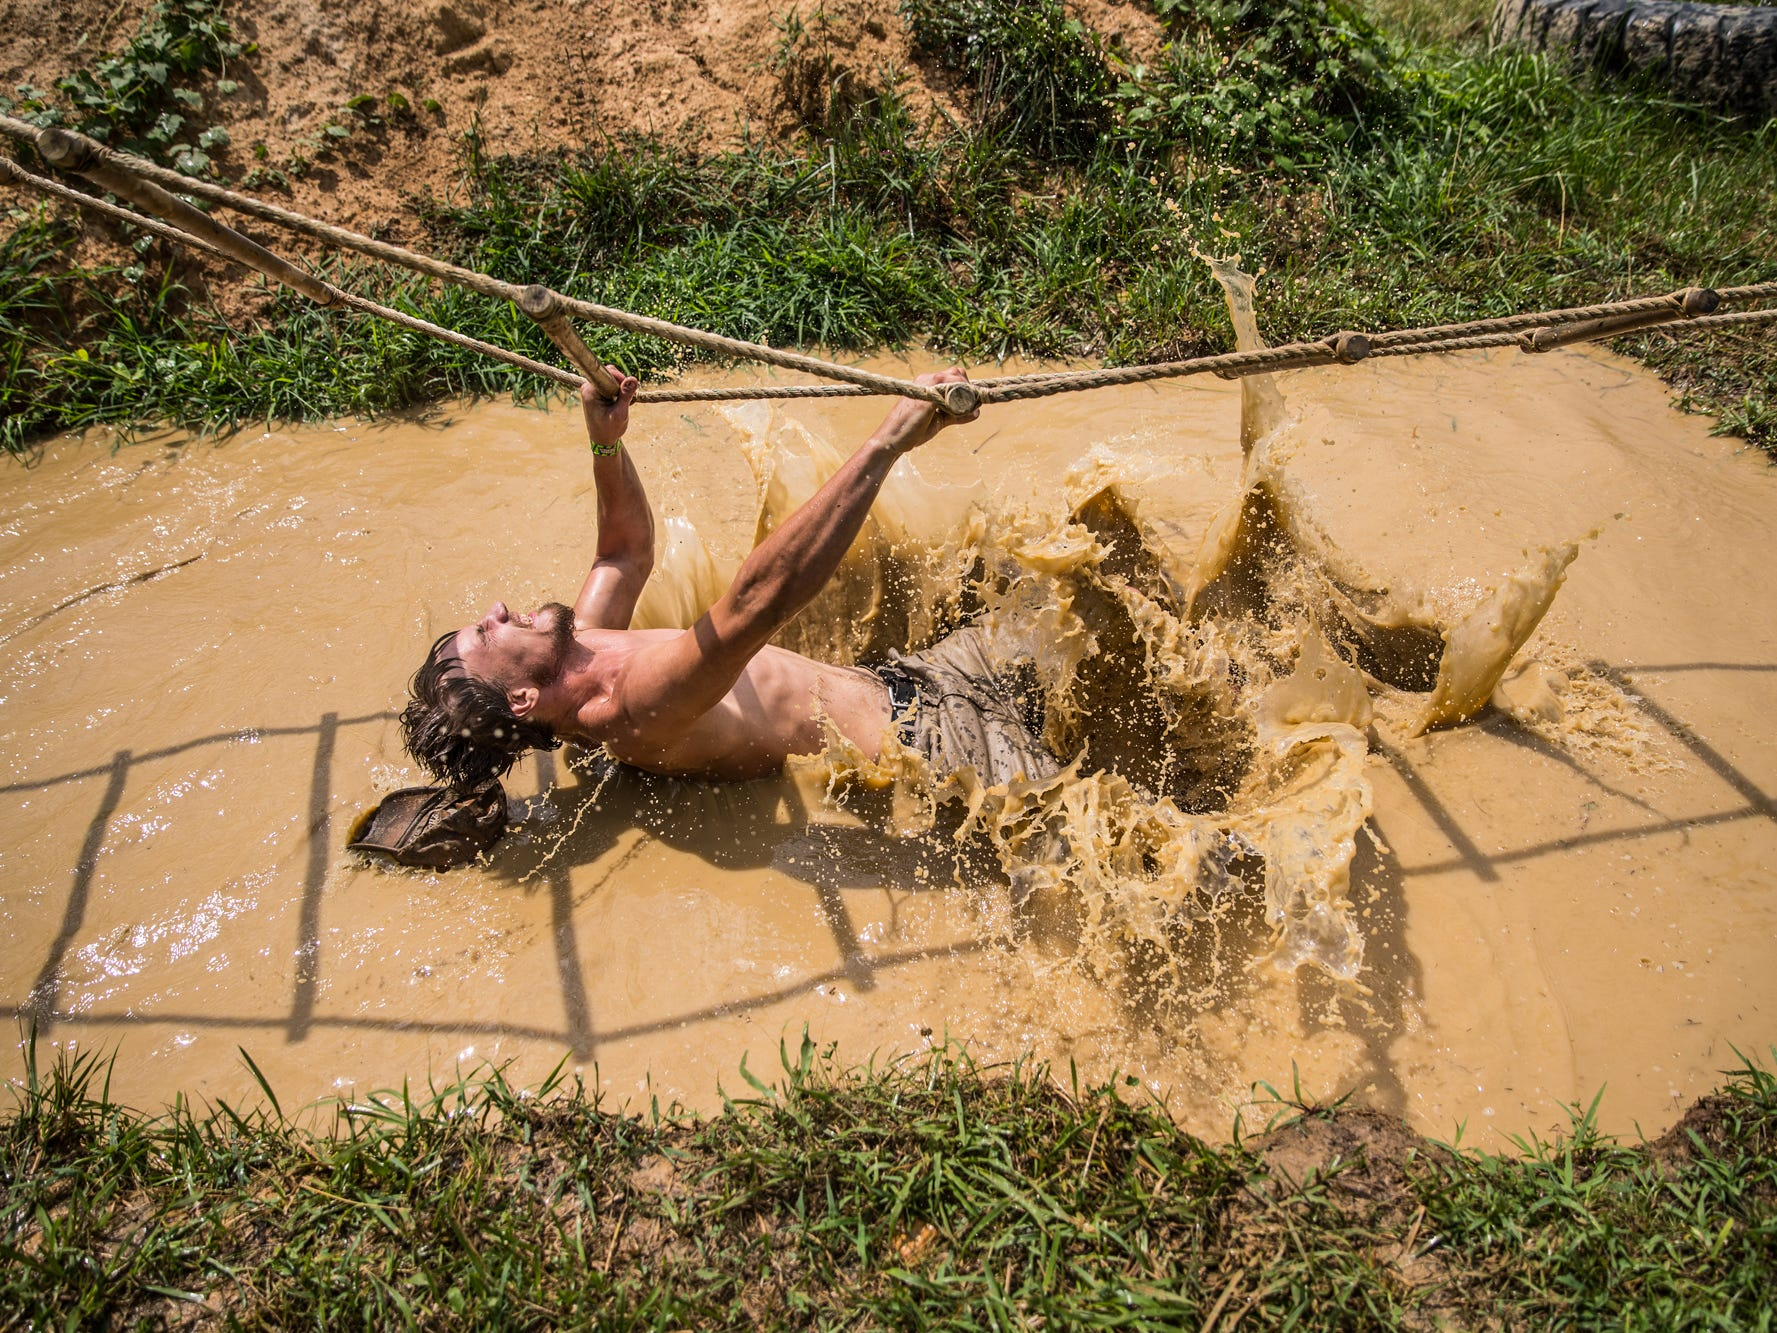 Ethan Taylor, of Middletown, Ohio, loses his balance and falls in a water hole during the Redneck Rave at BlackSwan Mudpit in Medora, Ind., on Friday, July 20, 2018.